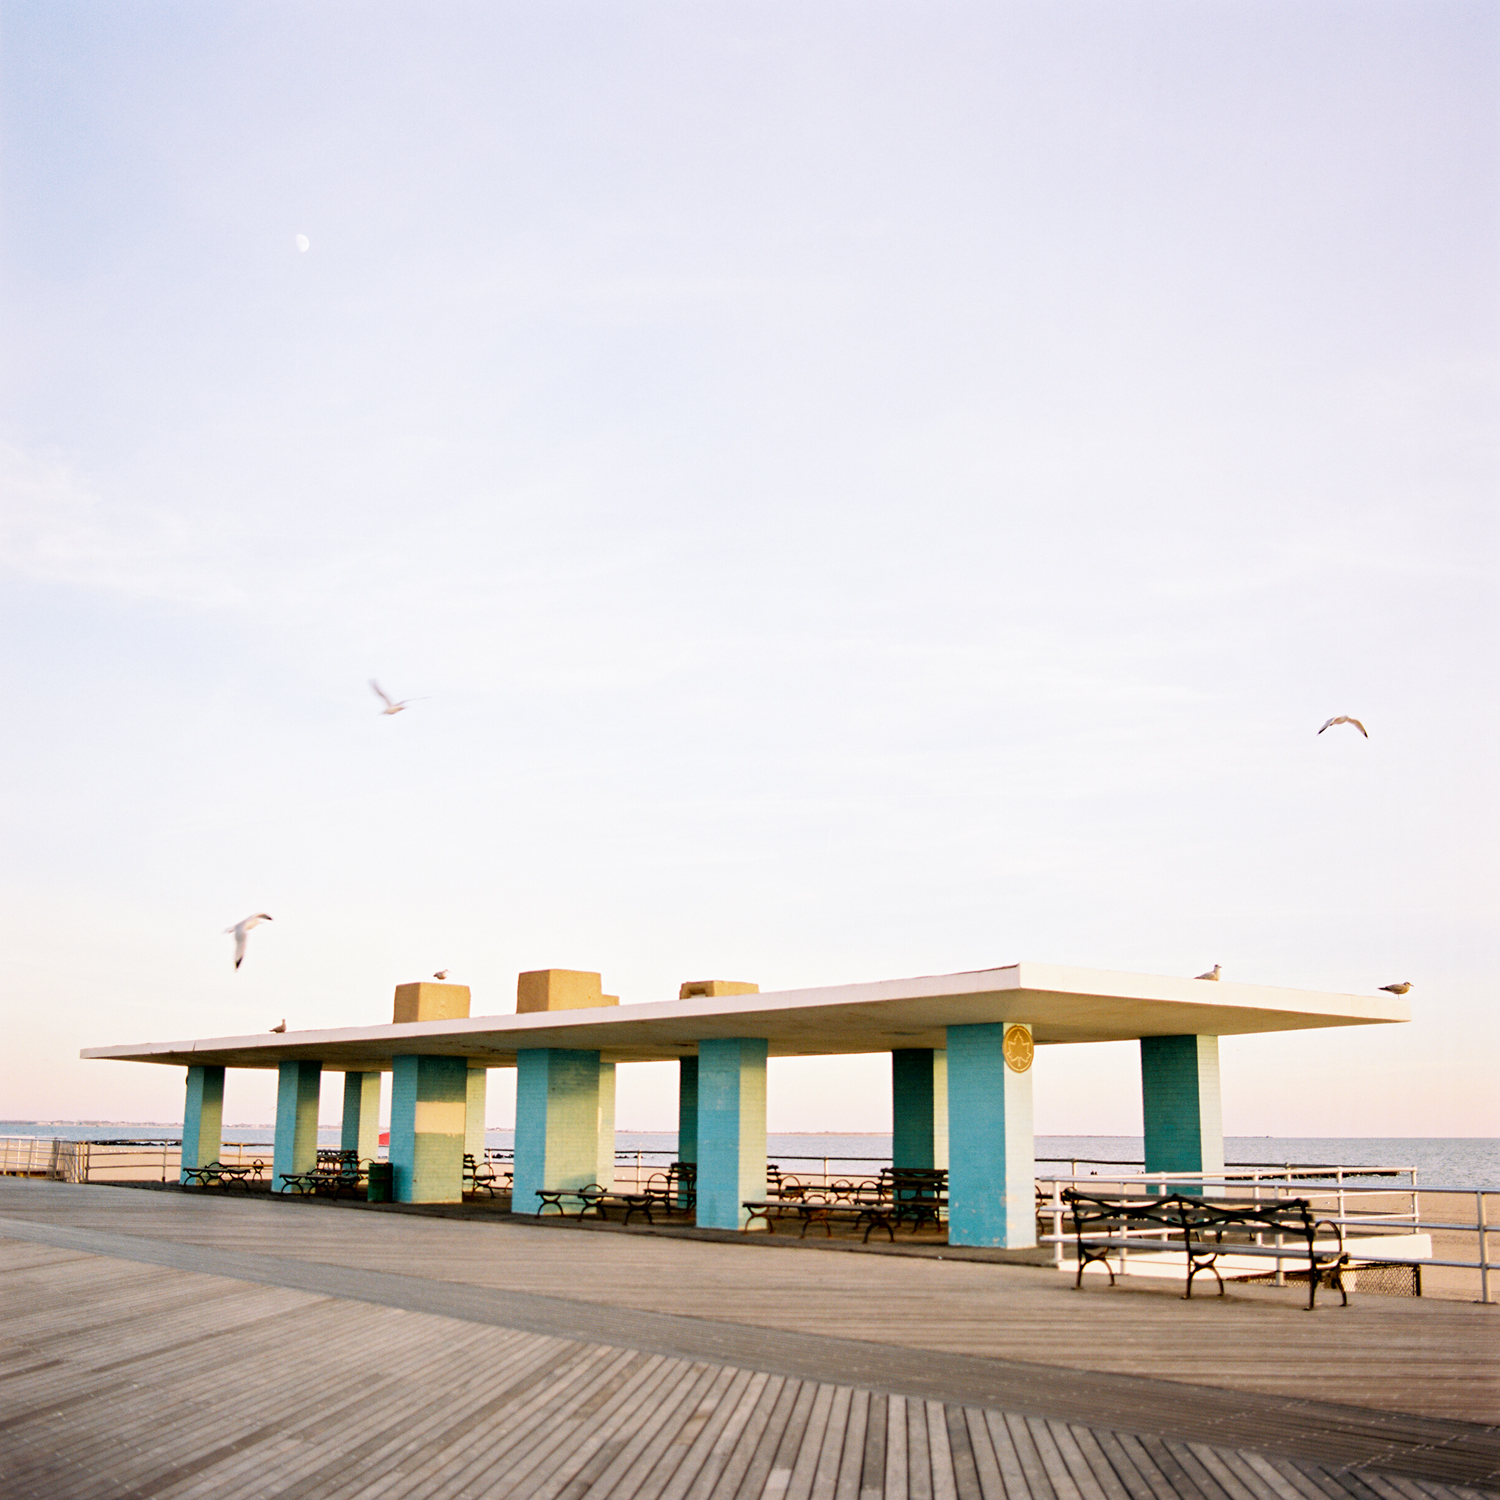 Coney Island-Siousca Photography-006.jpg